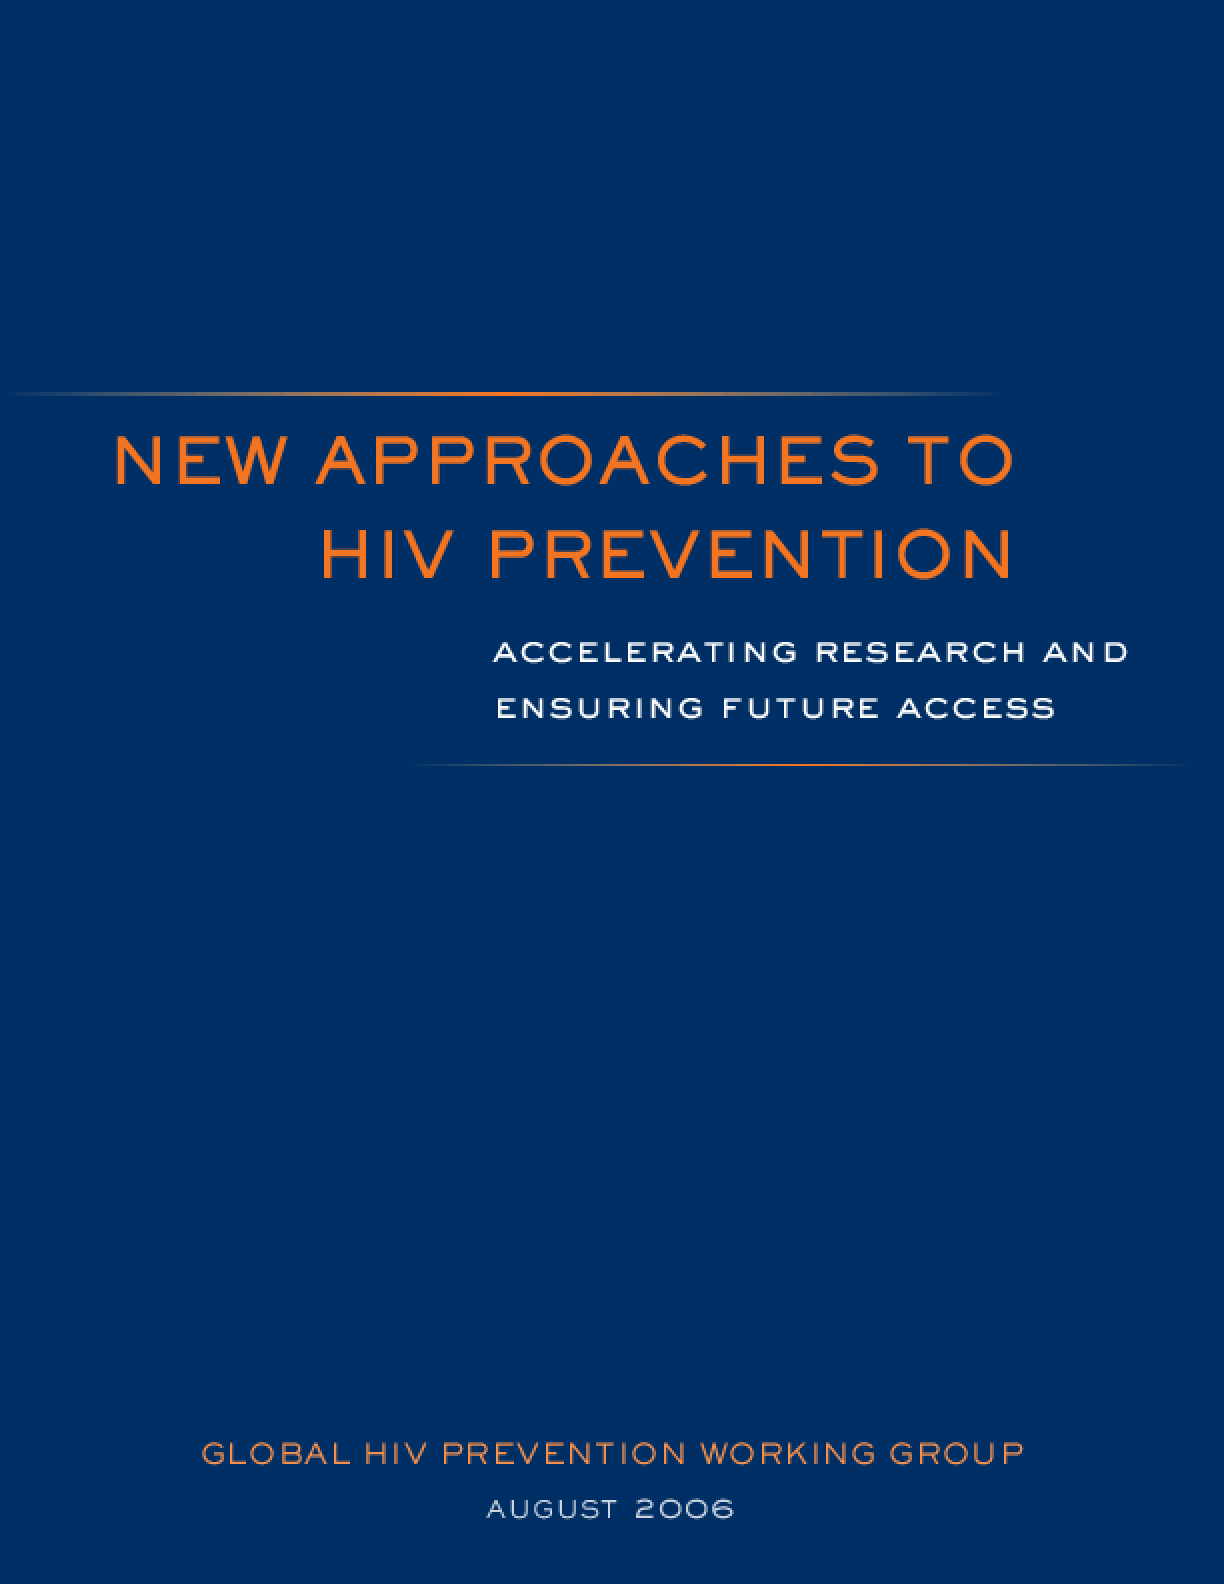 New Approaches to HIV Prevention: Accelerating Research and Ensuring Future Access